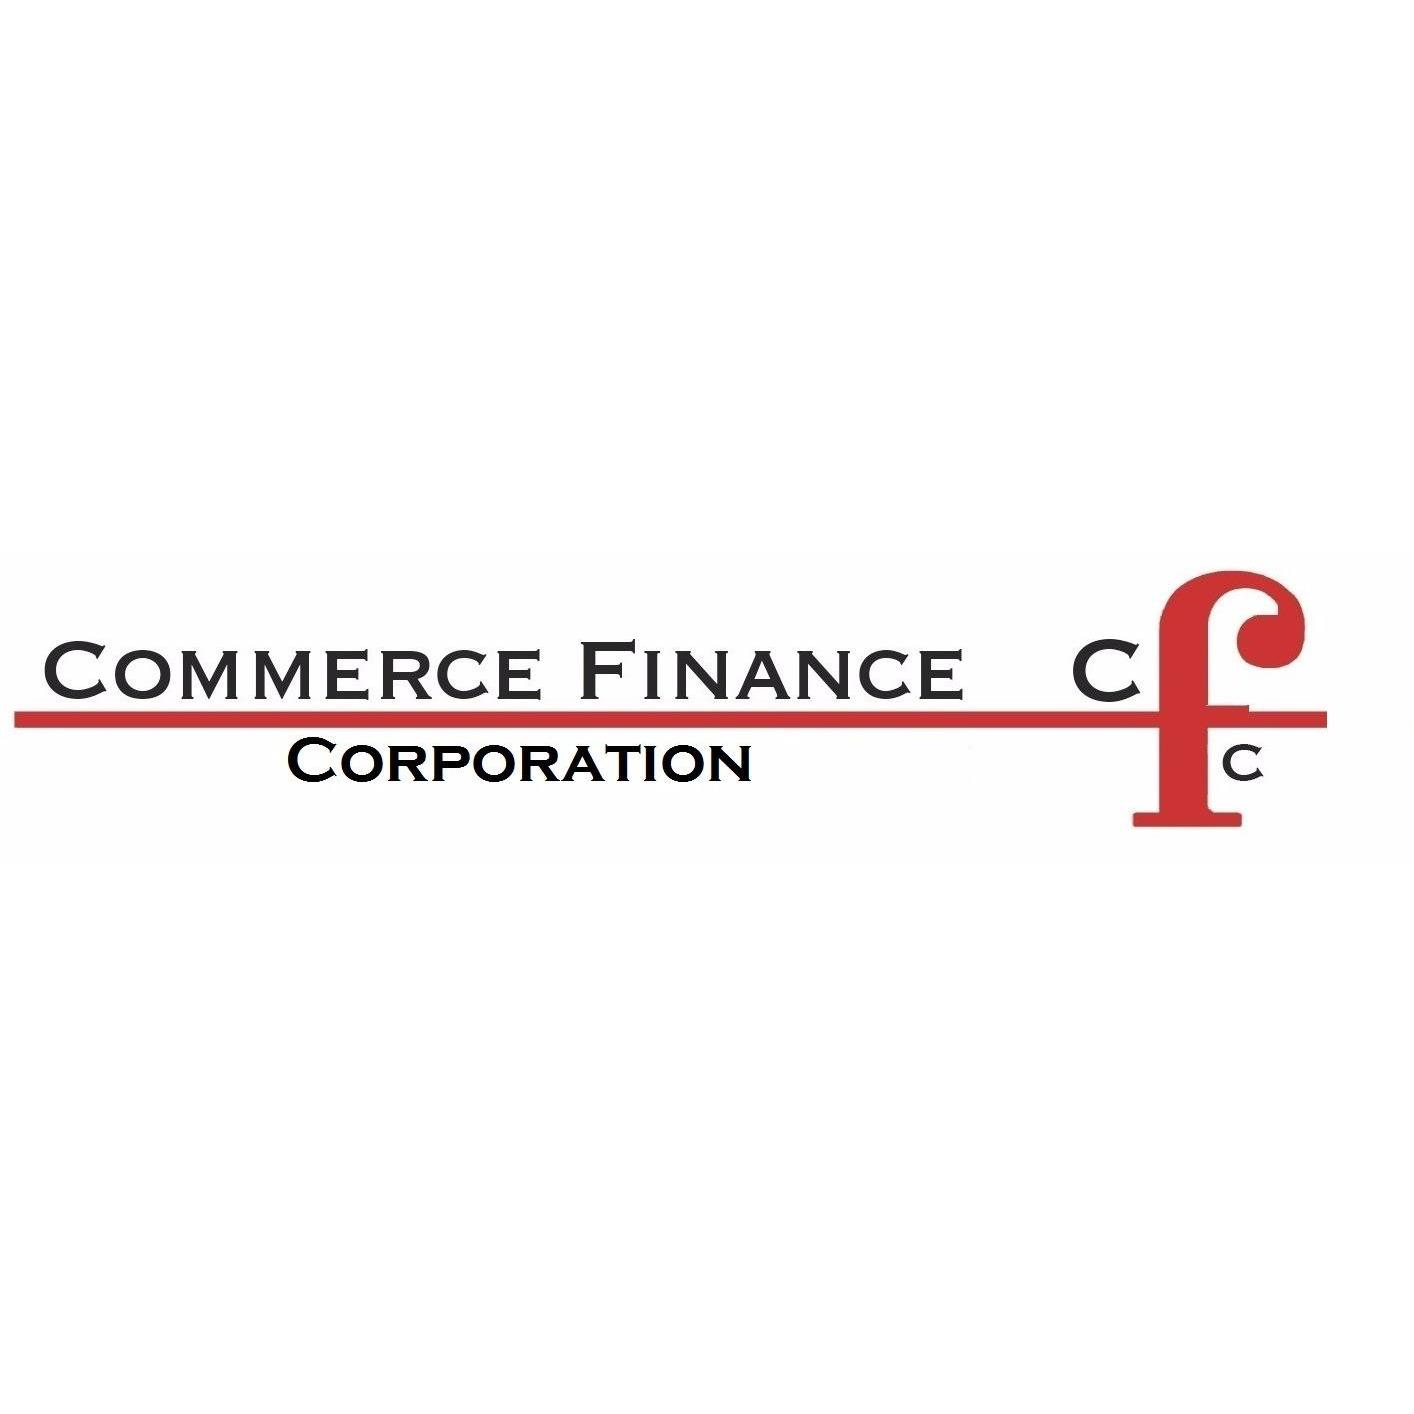 Commerce Finance